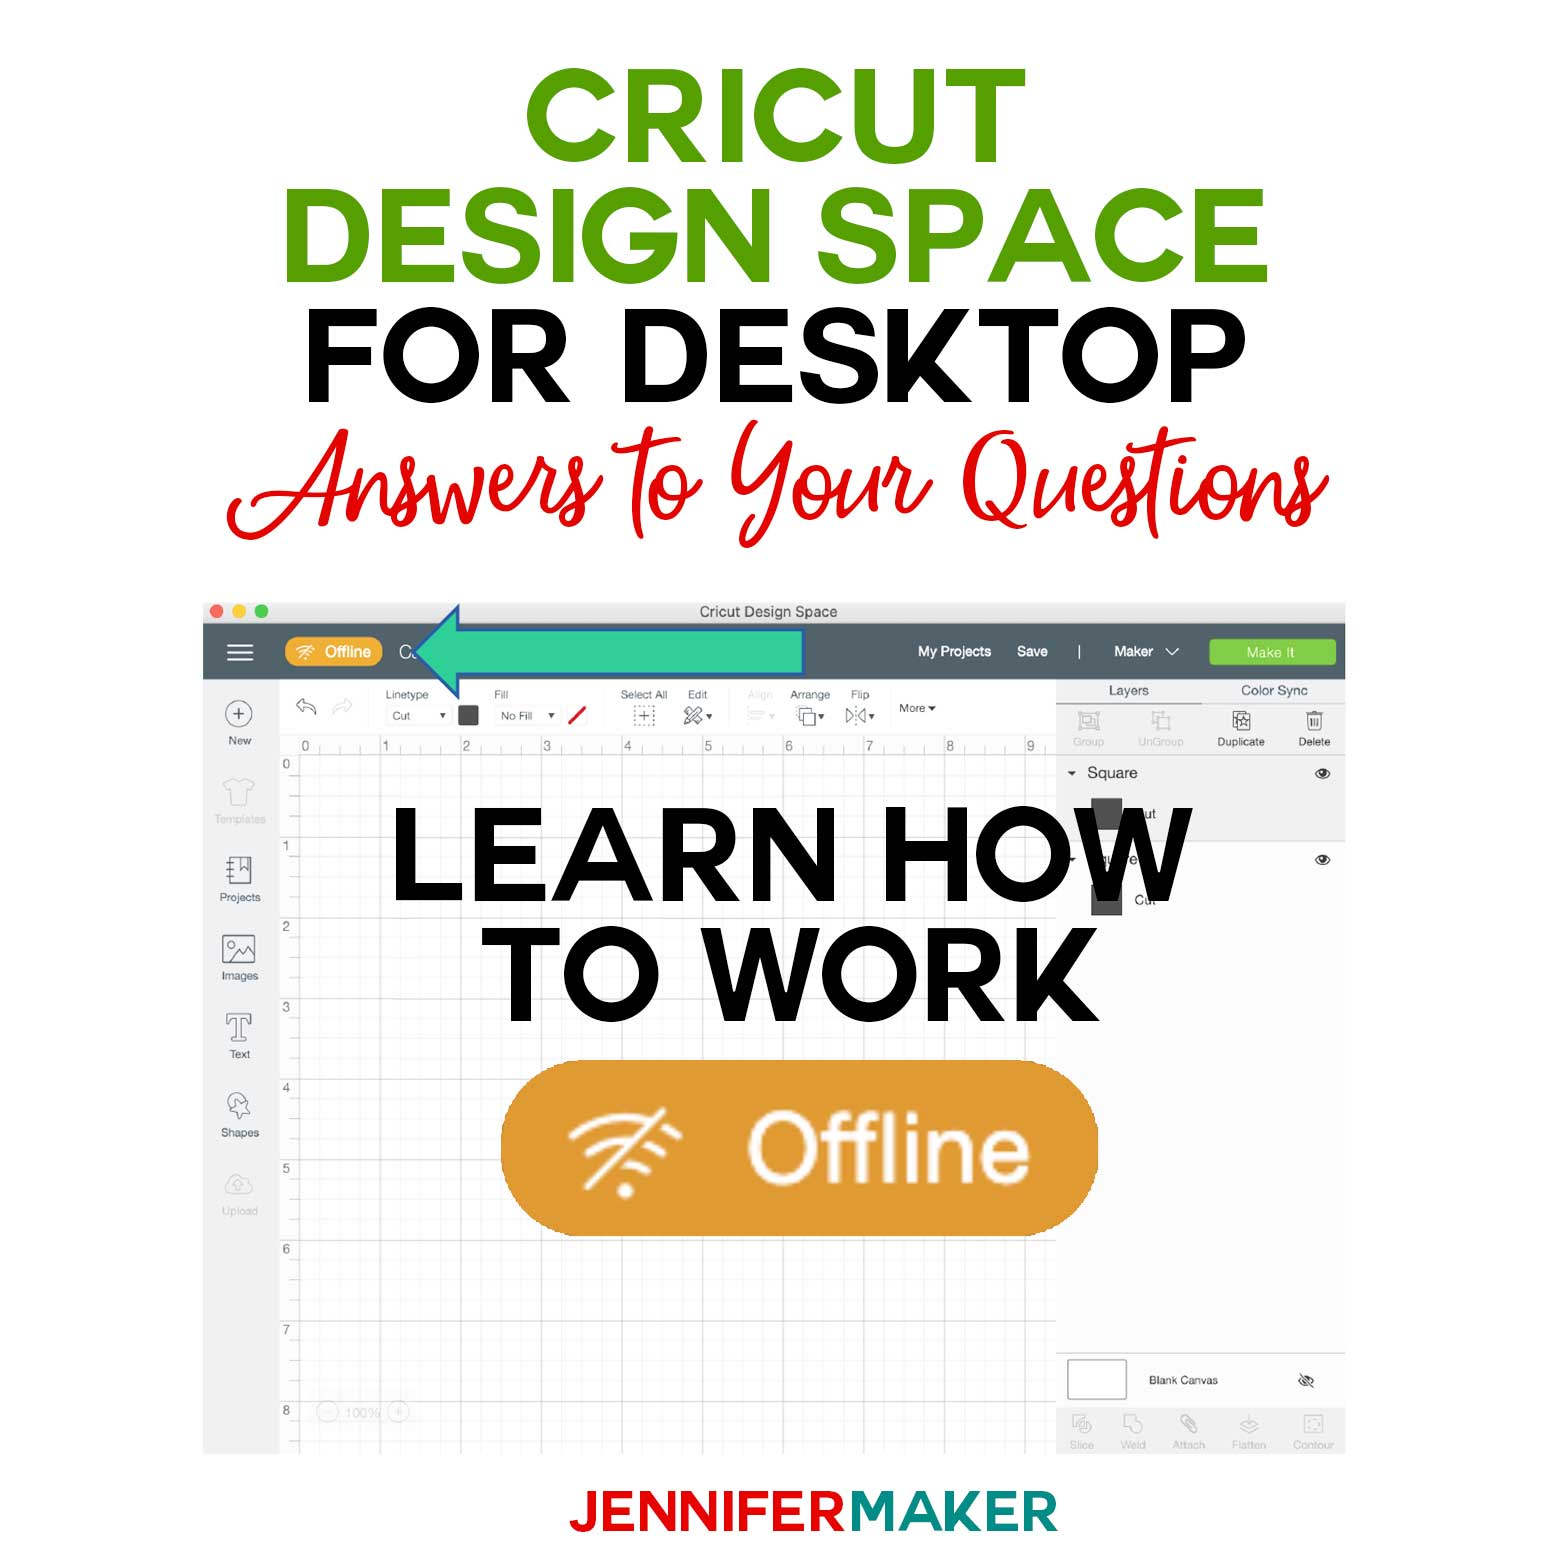 Cricut Design Space for Desktop: How to Work Offline #cricut #designspace